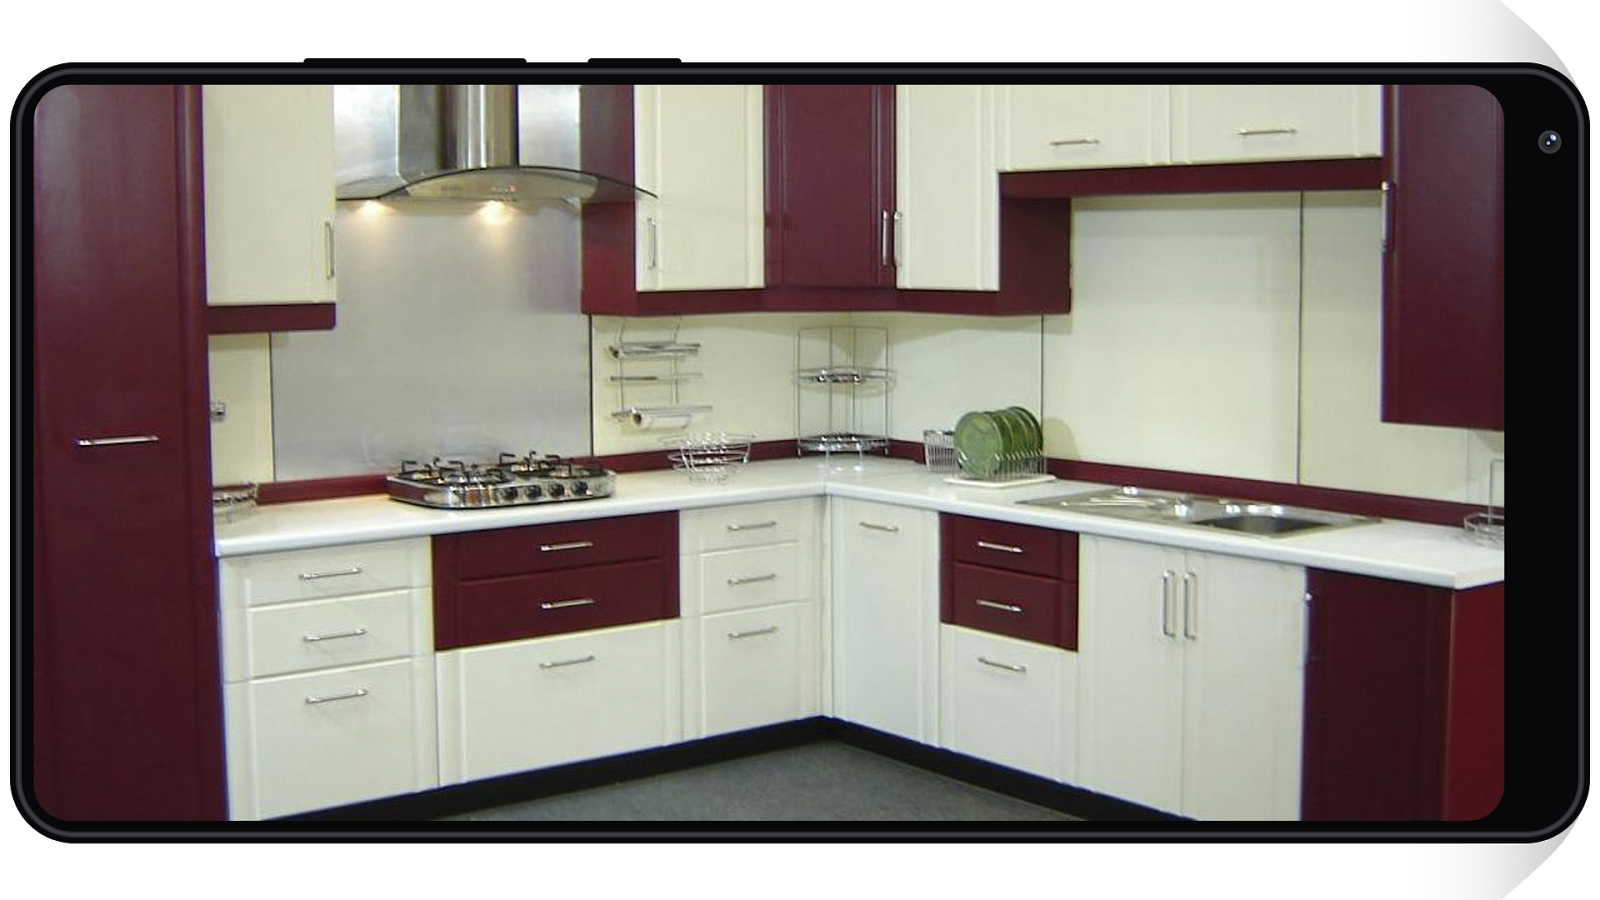 new kitchen cabinet design kitchens designs 2018 android apps on play 23748